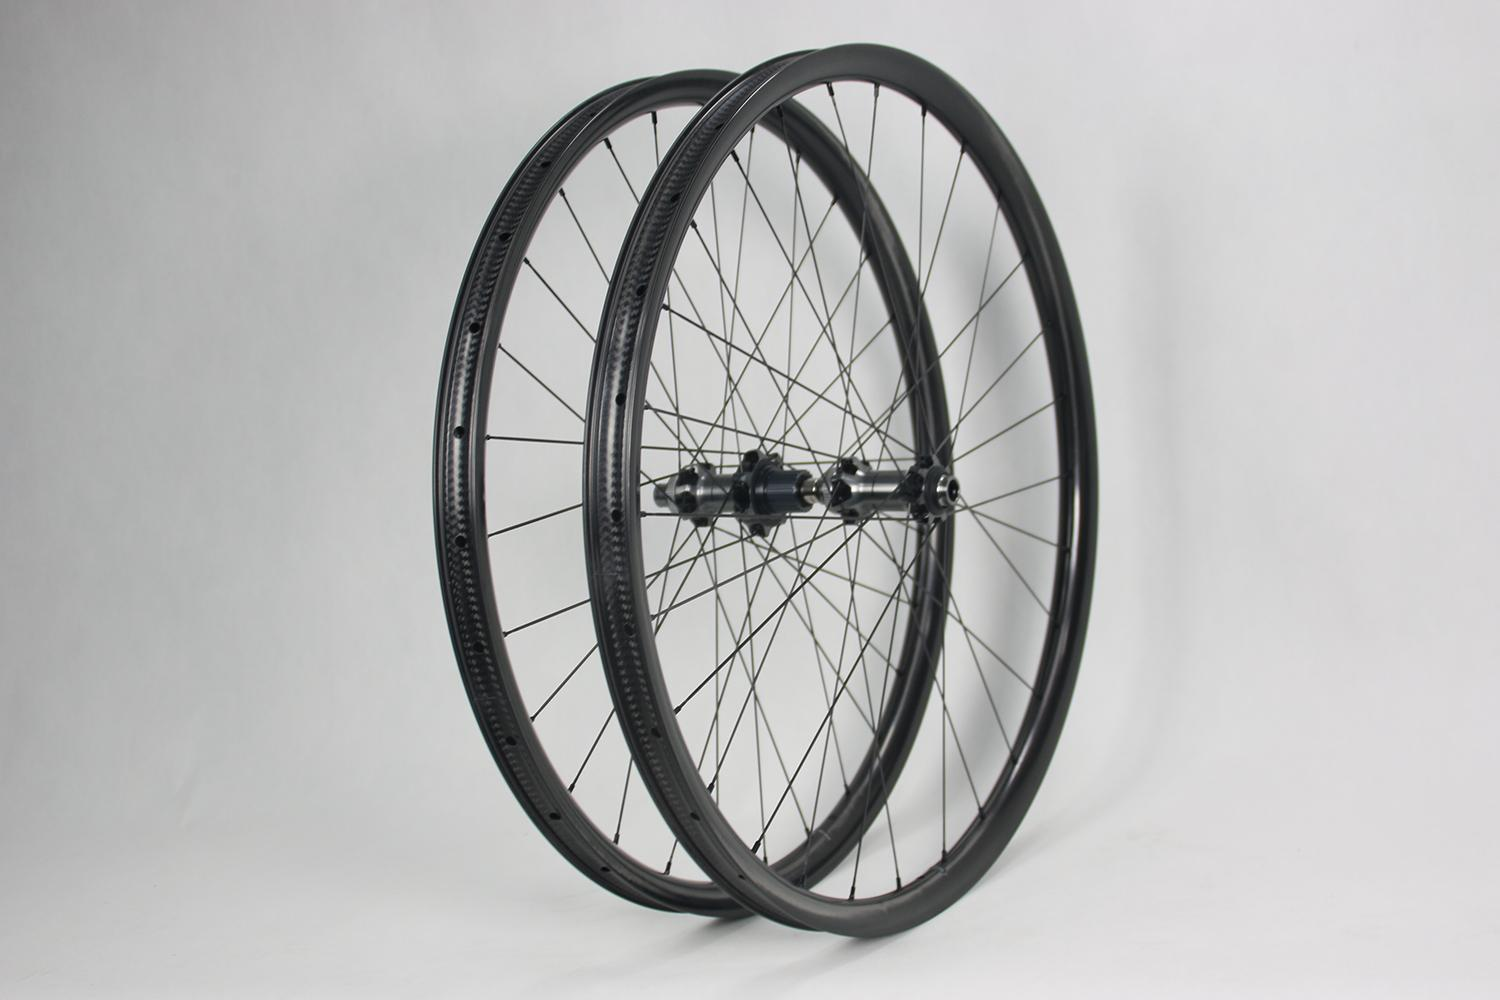 hookless-am930-carbon-wheelset-tubeless-mtb-tires-compatible